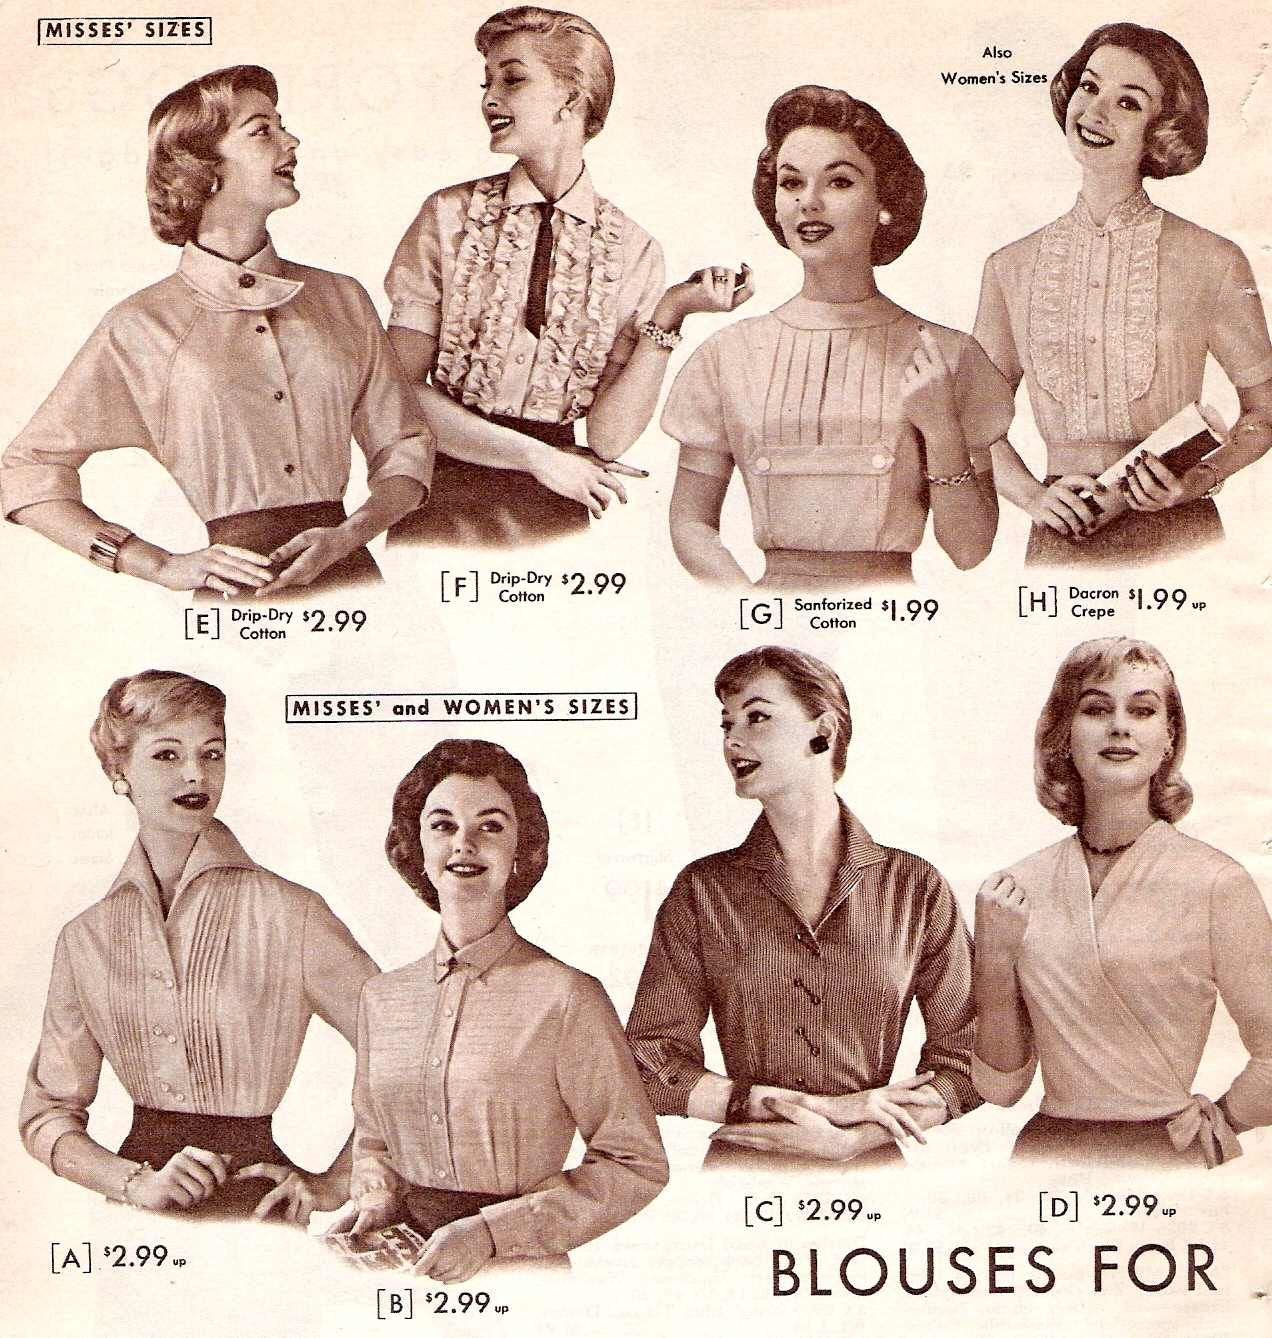 1950s Tops And Blouse Styles Style Blouses Fashion Style